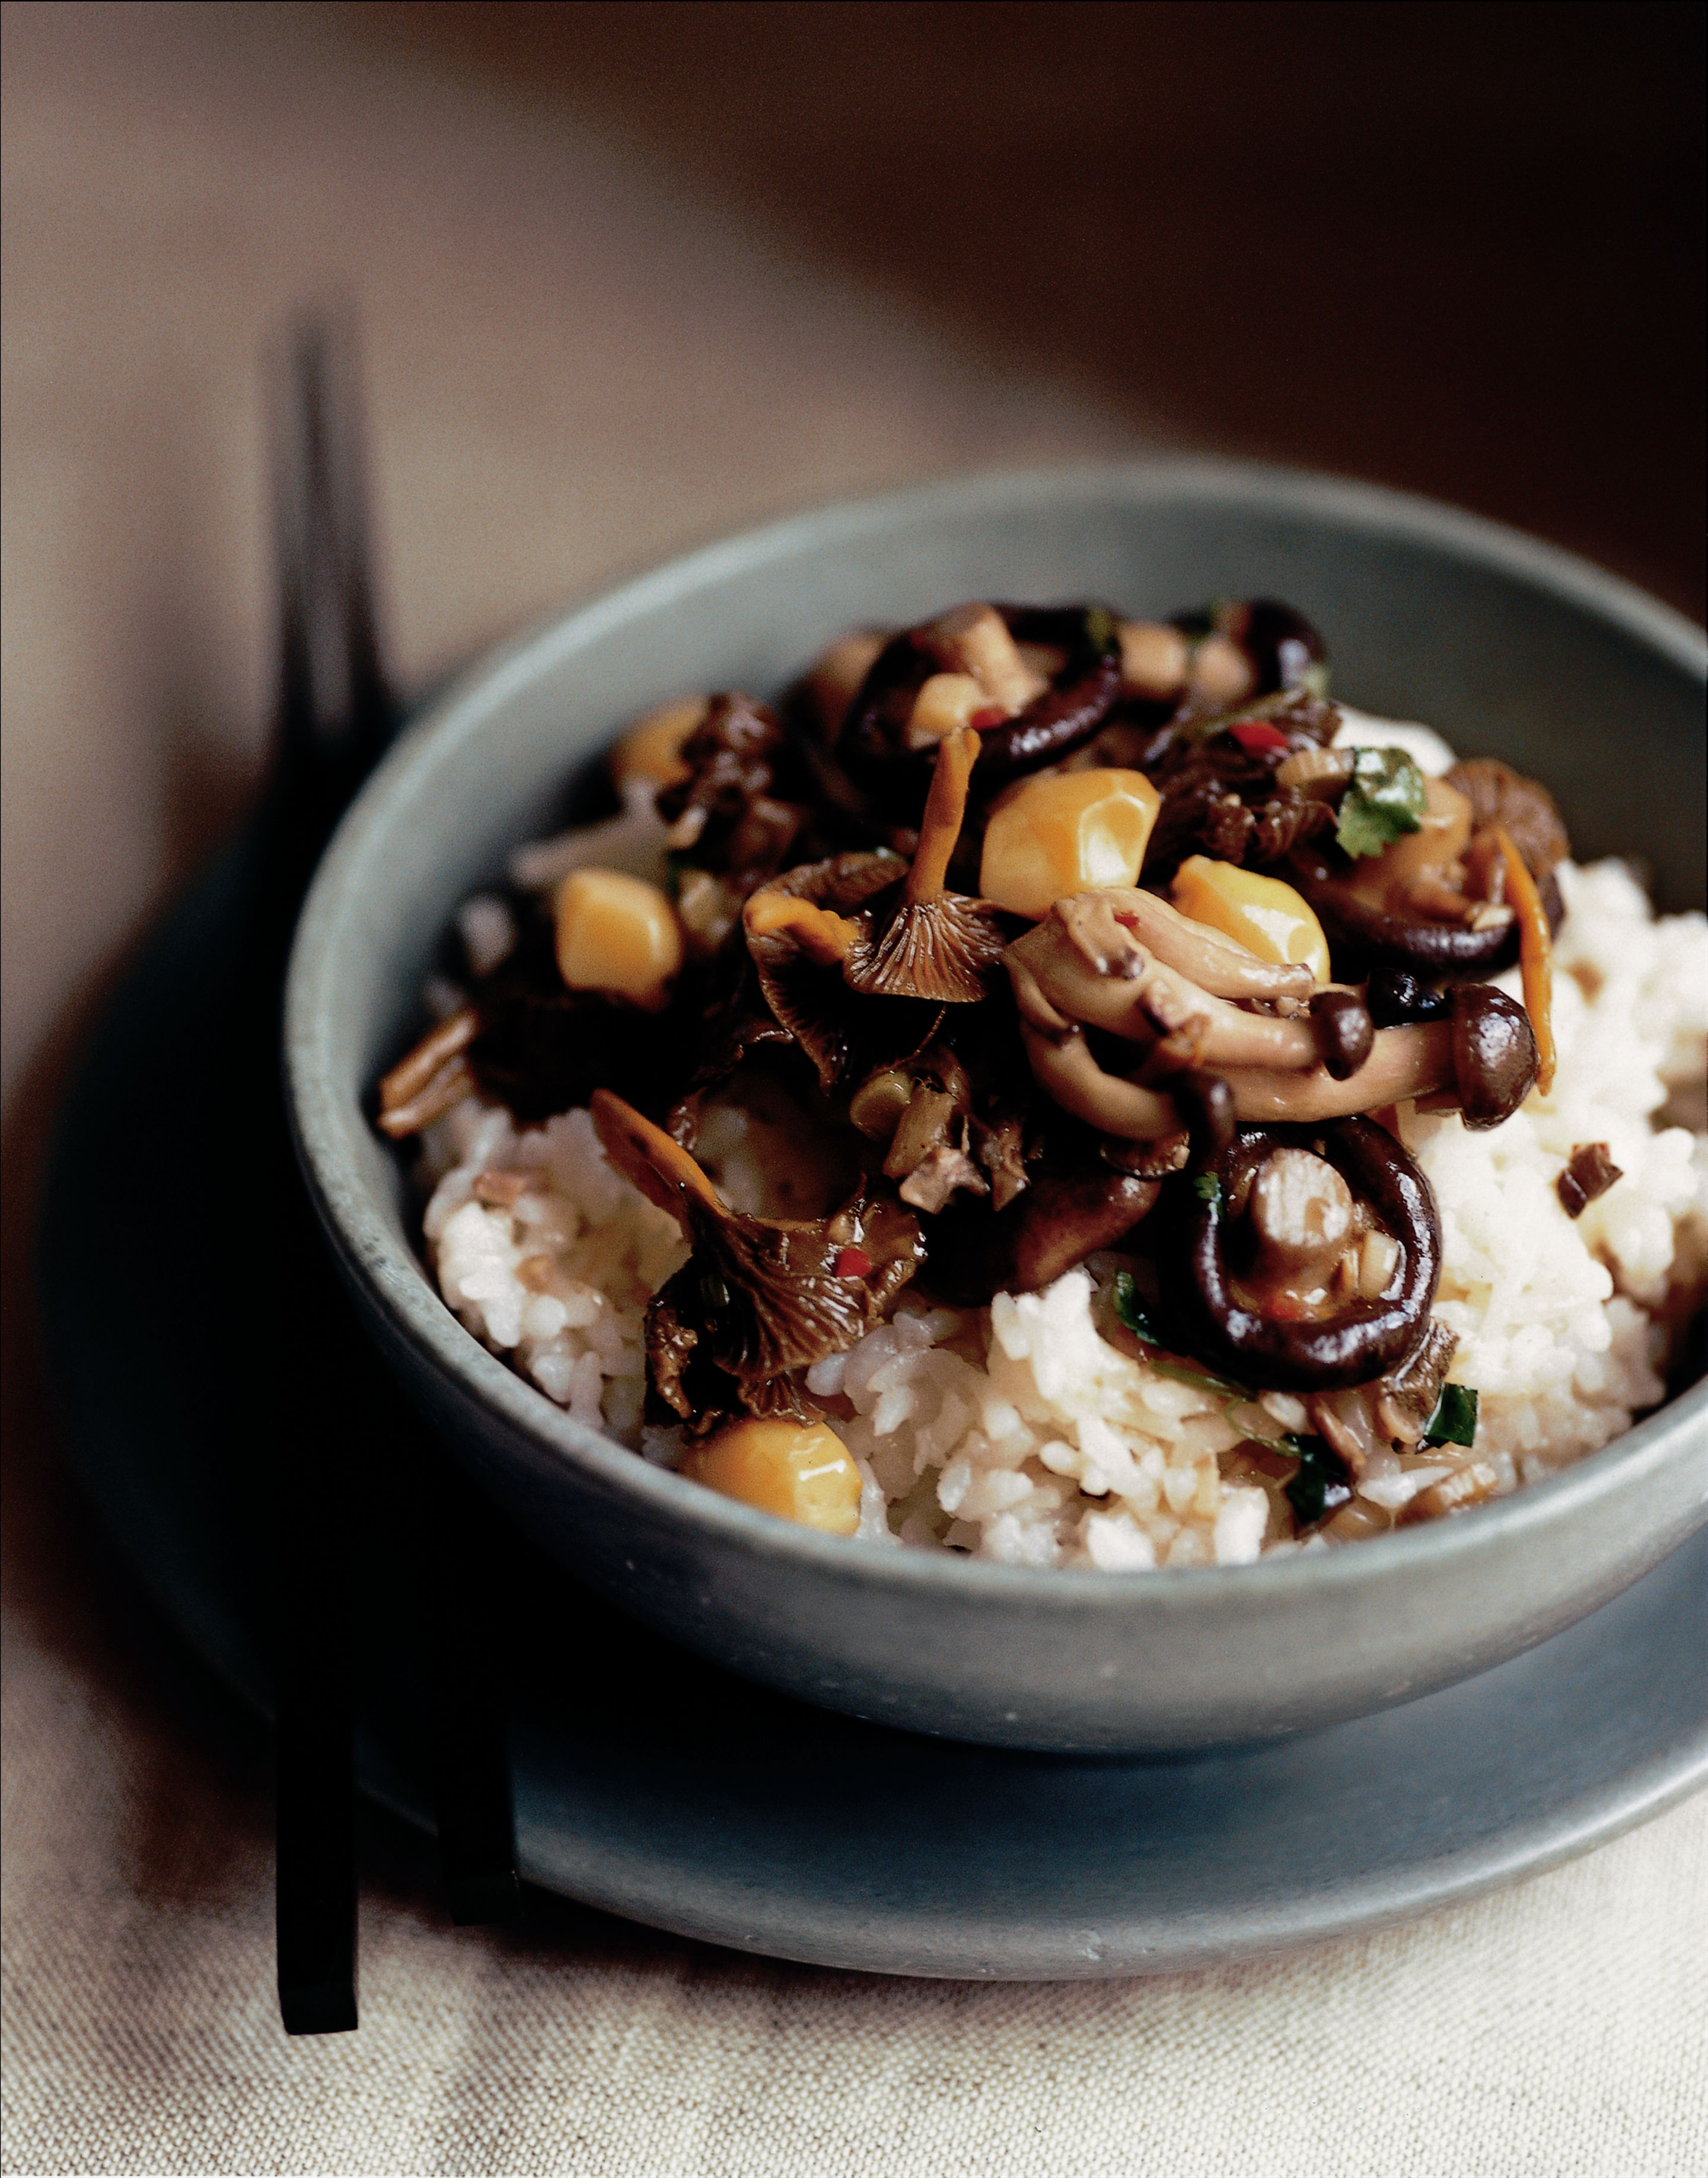 Sticky rice with mushrooms and gingko nuts